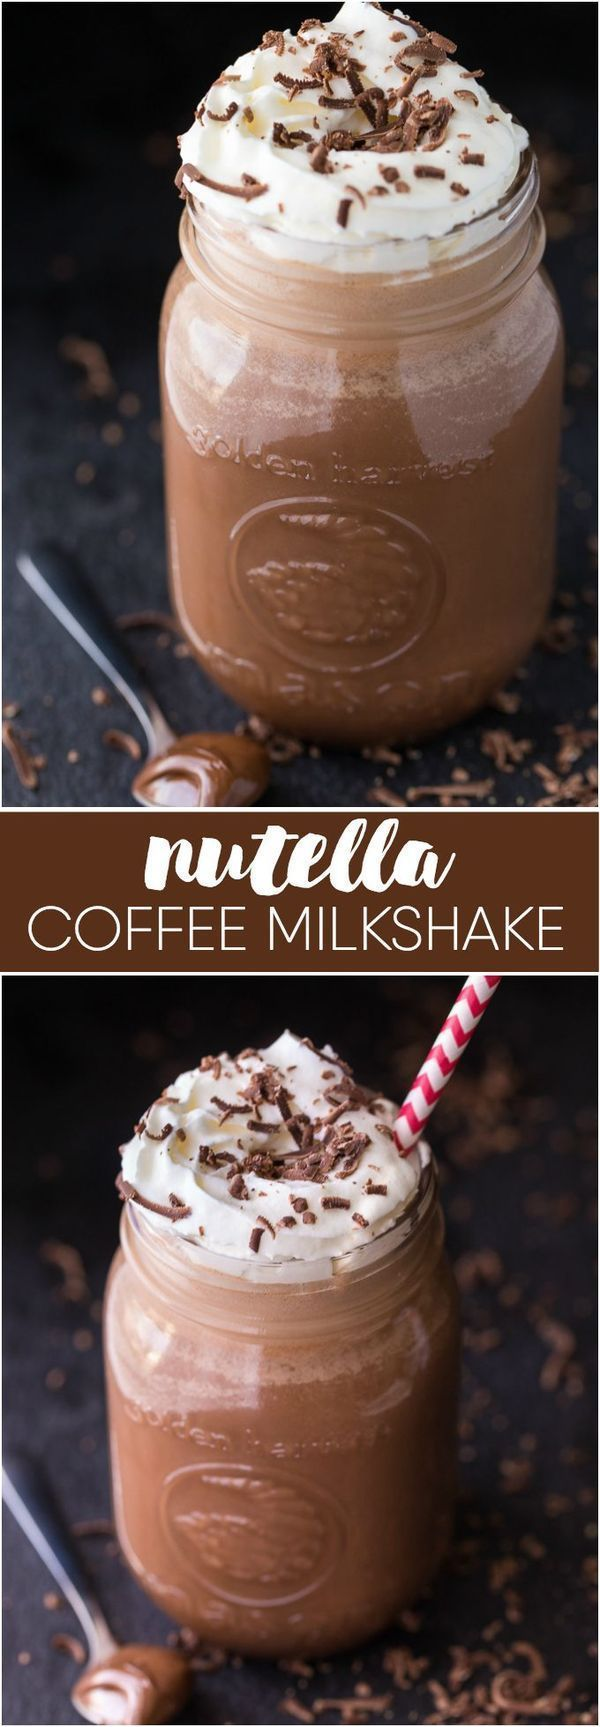 Milkshake Nutella Coffee Milkshake - Perfectly sweet, chocolatey with a hint of nuttiness! A cold and refreshing way to get your caffeine fix.Nutella Coffee Milkshake - Perfectly sweet, chocolatey with a hint of nuttiness! A cold and refreshing way to get your caffeine fix.